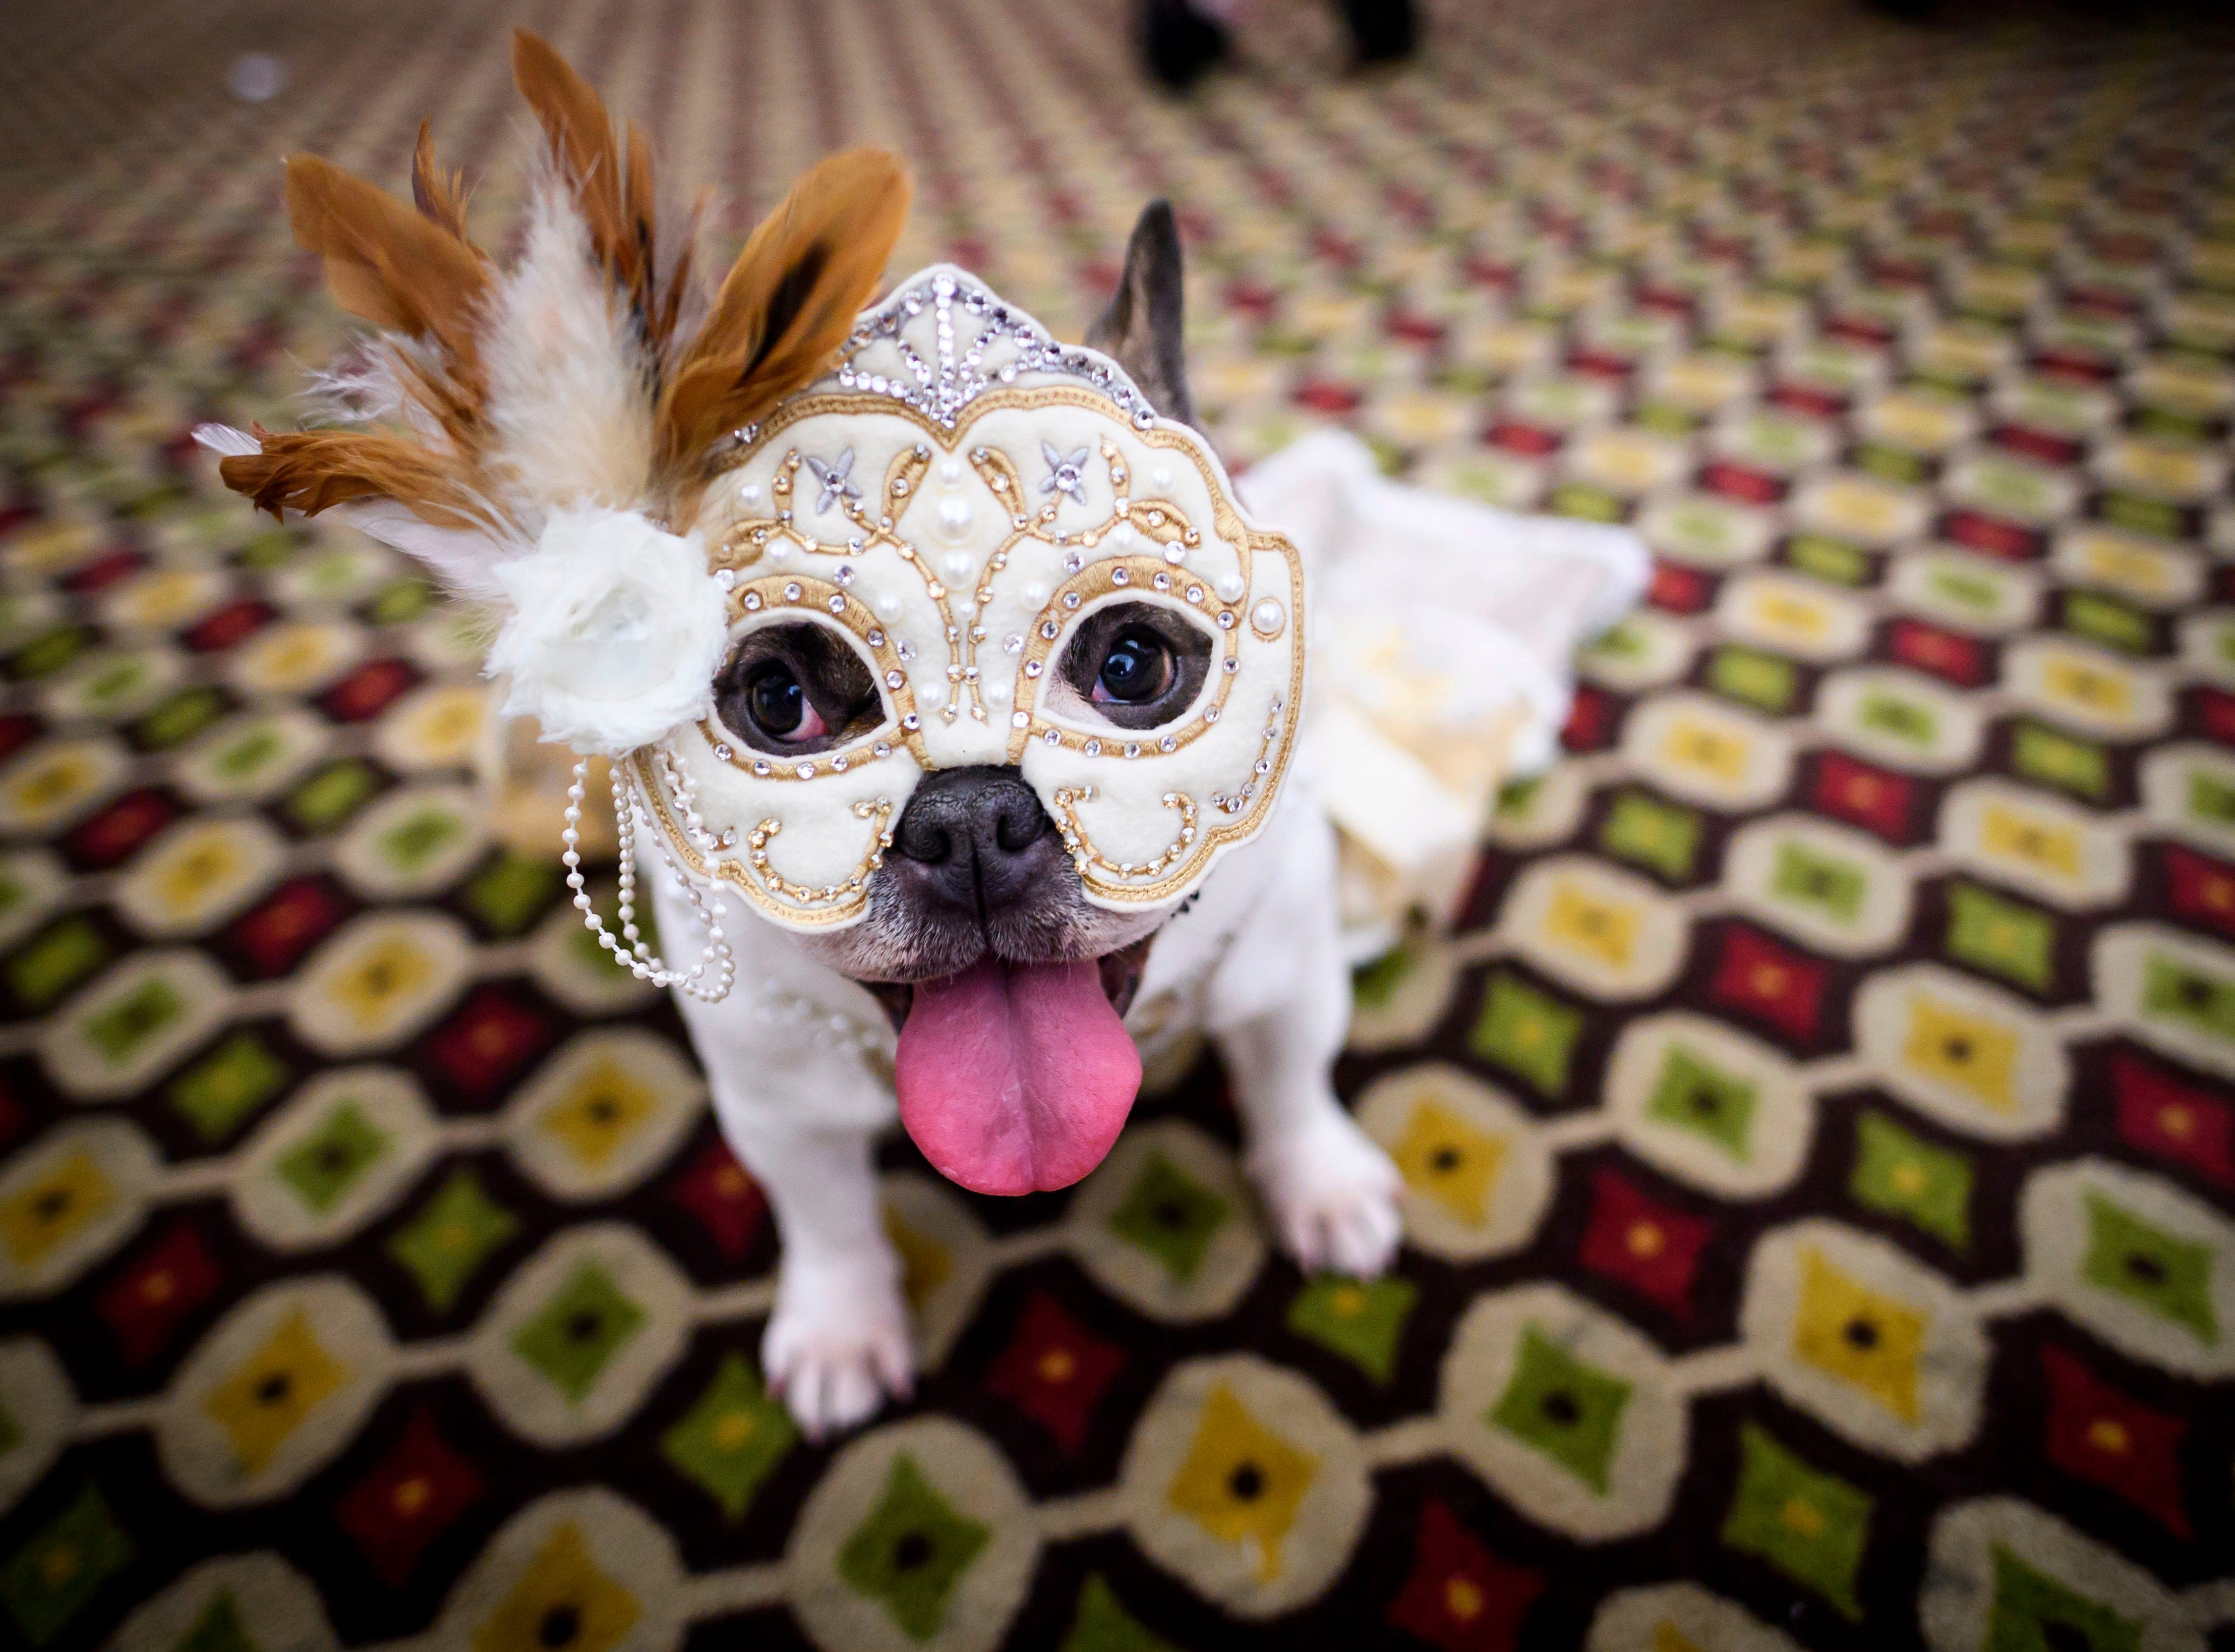 A dog gets dressed up for a show  backstage at the 16th annual New York Pet Fashion Show on Feb. 7, 2019 in New York City.